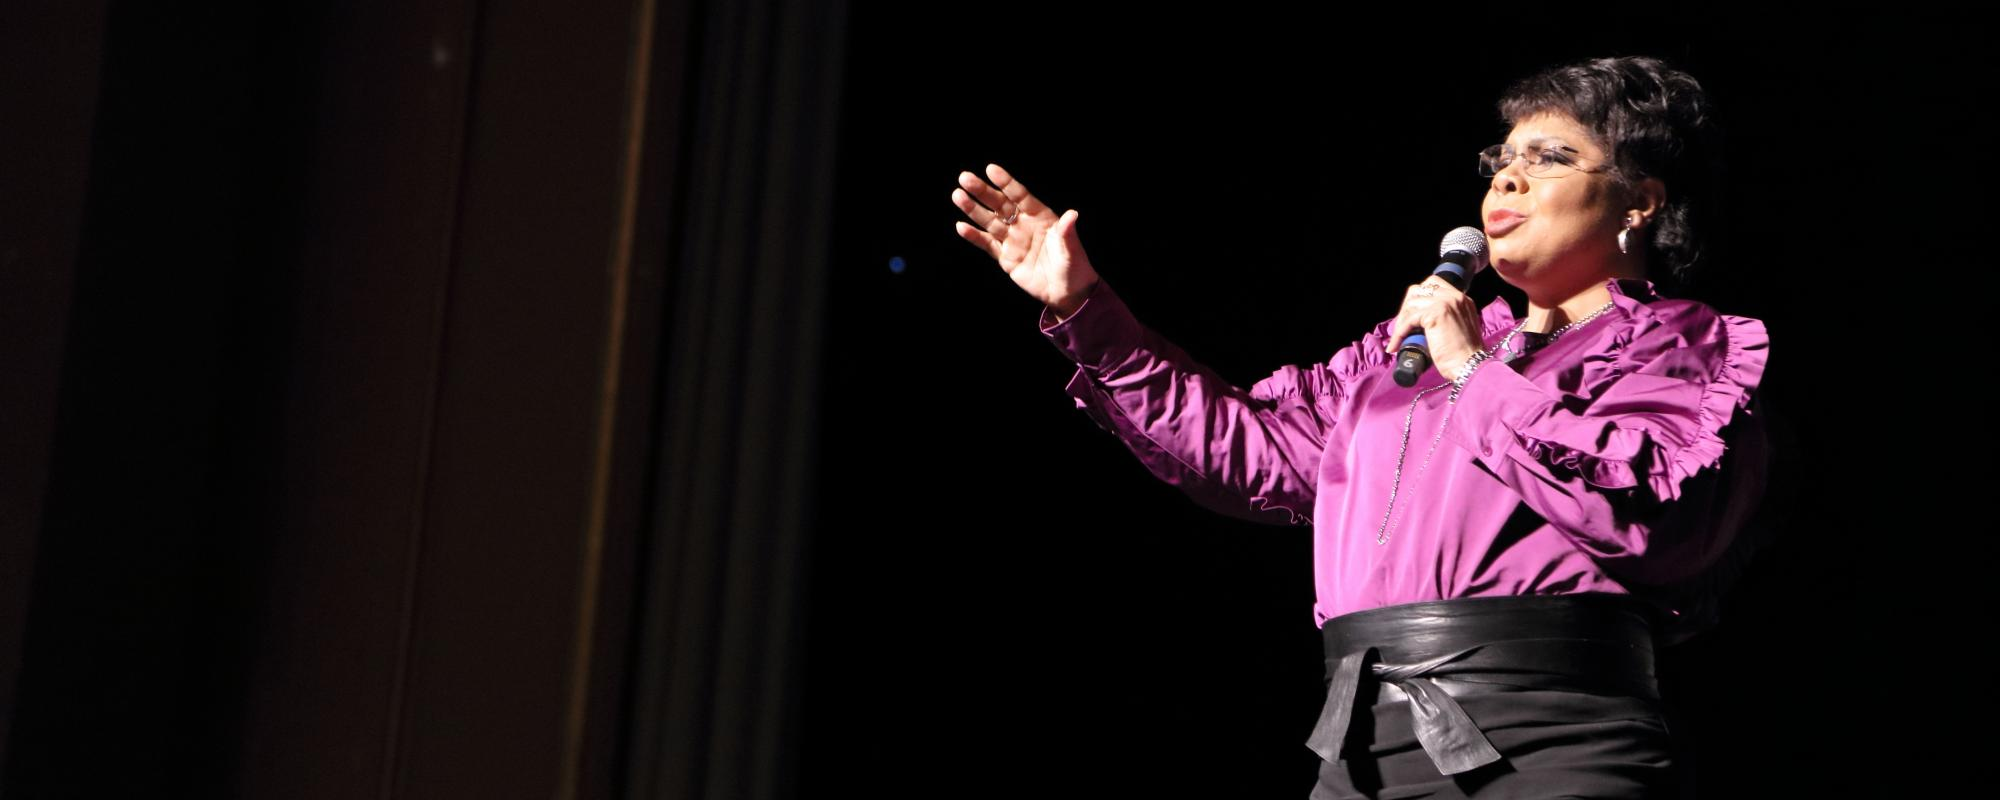 April Ryan wearing purple blouse, holding microphone and gesturing with right hand.